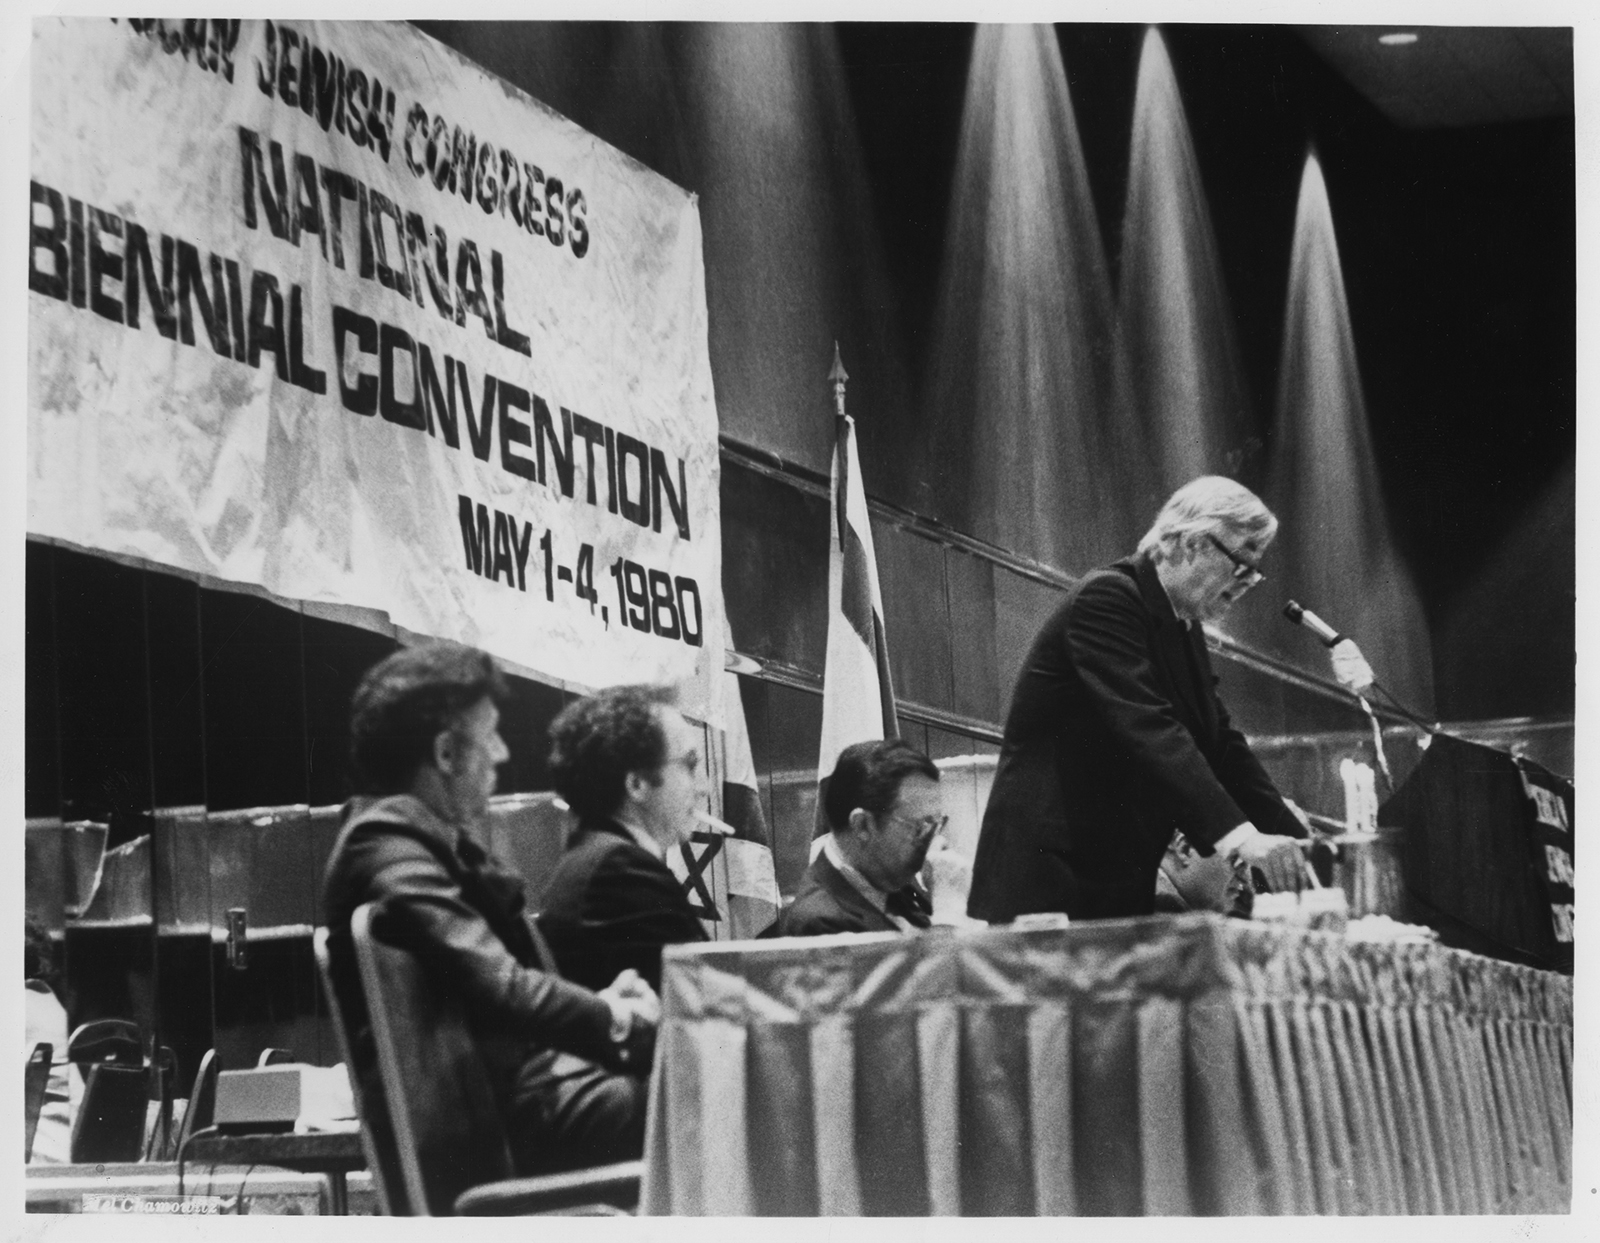 """Senator Daniel P. Moynihan (D-NY) addresses delegates to the American Jewish Congress national biennial convention in Washington in May 1980. With him, from left, are Phil Baum, associate executive director, Henry Siegman, executive director, and Howard M. Squadron, president. In a sobering speech to the Jewish leaders, Mr. Moynihan warned that """"the shift of military power away from the U.S. and toward the Soviet Union"""" is taking a heavy toll on American diplomacy, requiring """"painful and expensive approaches"""" to check Soviet expansionism in the Middle East and Southwest Asia."""" He declared, """"It is clear that in the aftermath of the Soviet invasion of Afghanistan the Administration began to look to a resolution of the Palestinian issue manifestly tilted against Israel, as a means of bolstering the American position in the region. RNS archive photo. Photo courtesy of the Presbyterian Historical Society."""